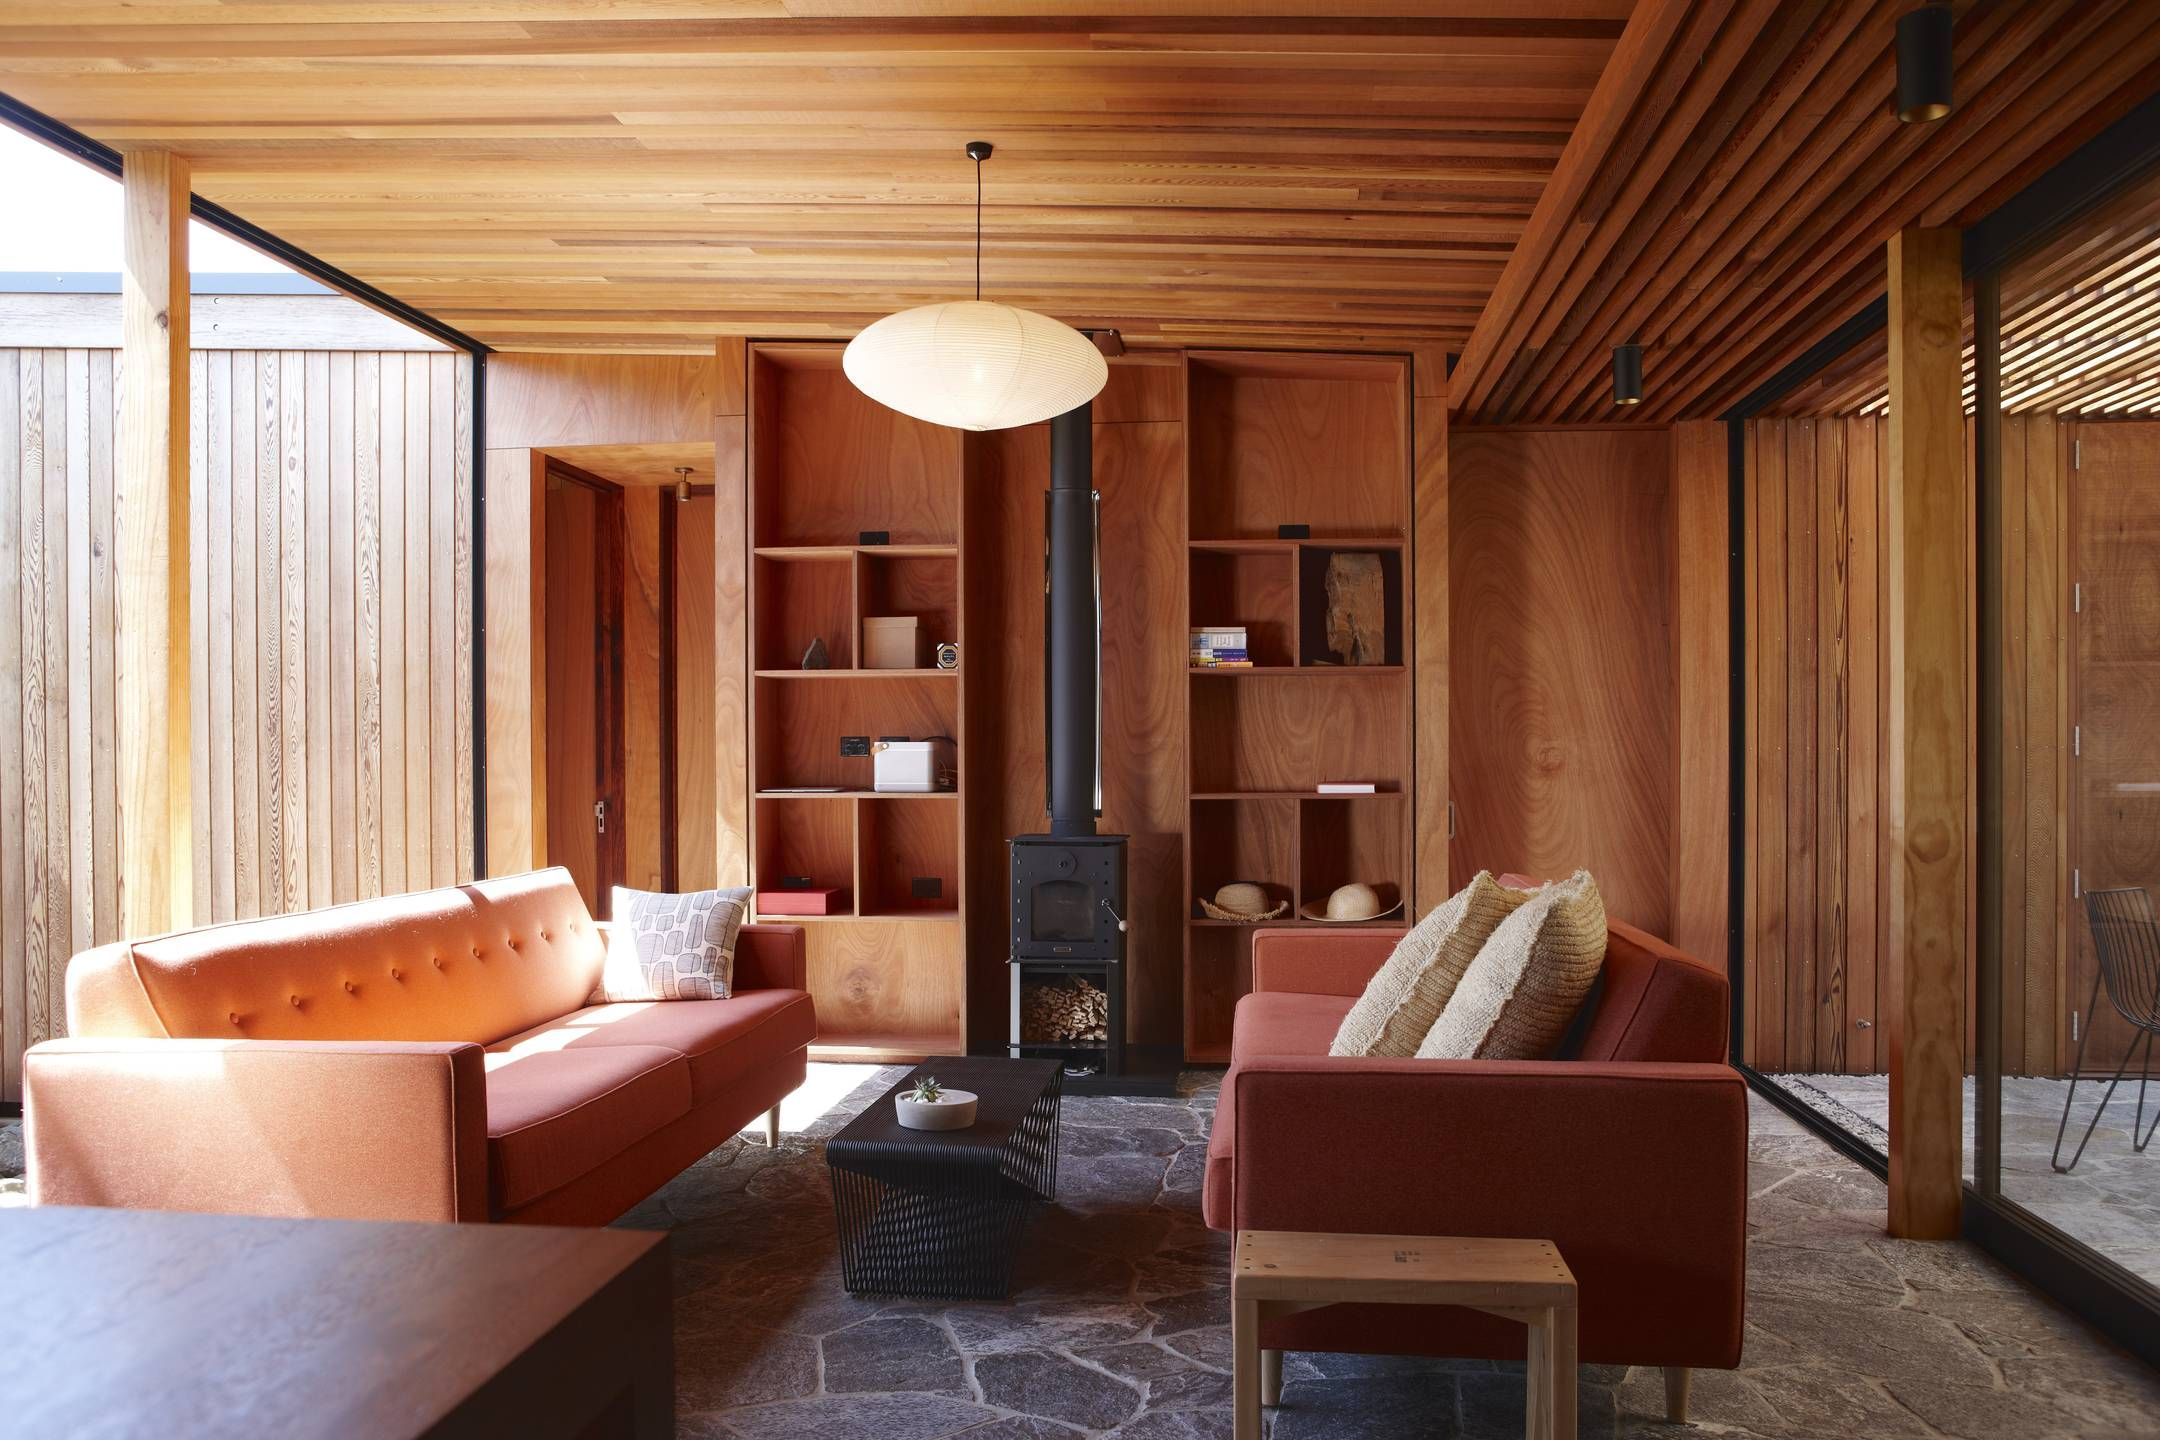 Bets Bach by Herbst Architects | Living in 2018 | Pinterest ... Chambre Taerie on